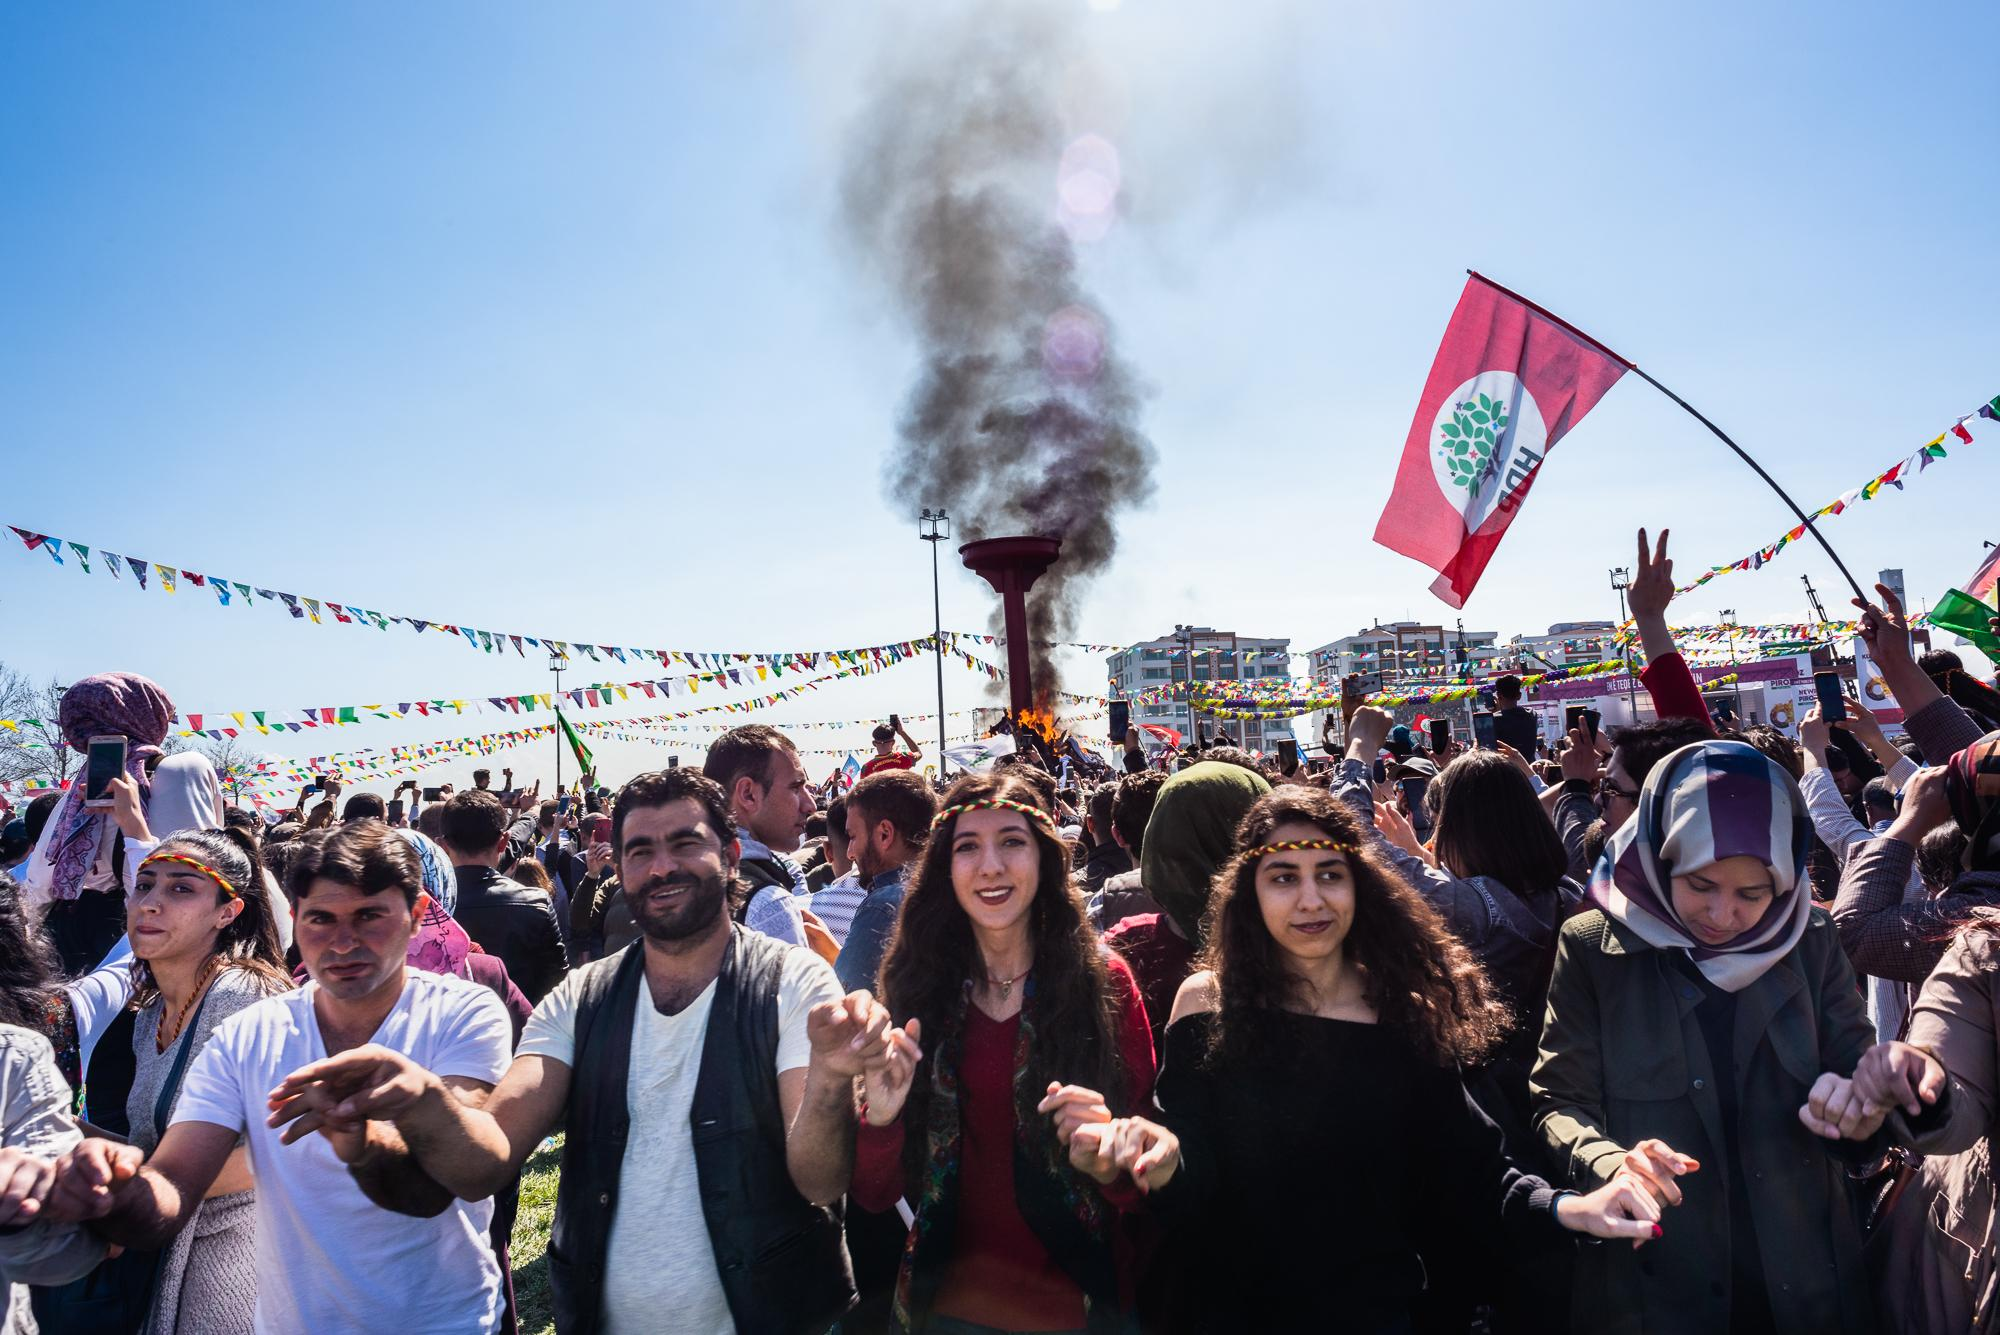 DİYARBAKIR, TURKEY – MARCH 21, 2019: Kurdish people celebrating Newroz, the traditional New Year in Kurdish culture, which usually occurs on 21 March. In Turkey, Newroz is largely considered a symbol of Kurdish identity, as public celebration was banned for decades until 2005. In recent years, the Newroz celebration in Diyarbakır attracts around one million participants and has become a platform for political messages.